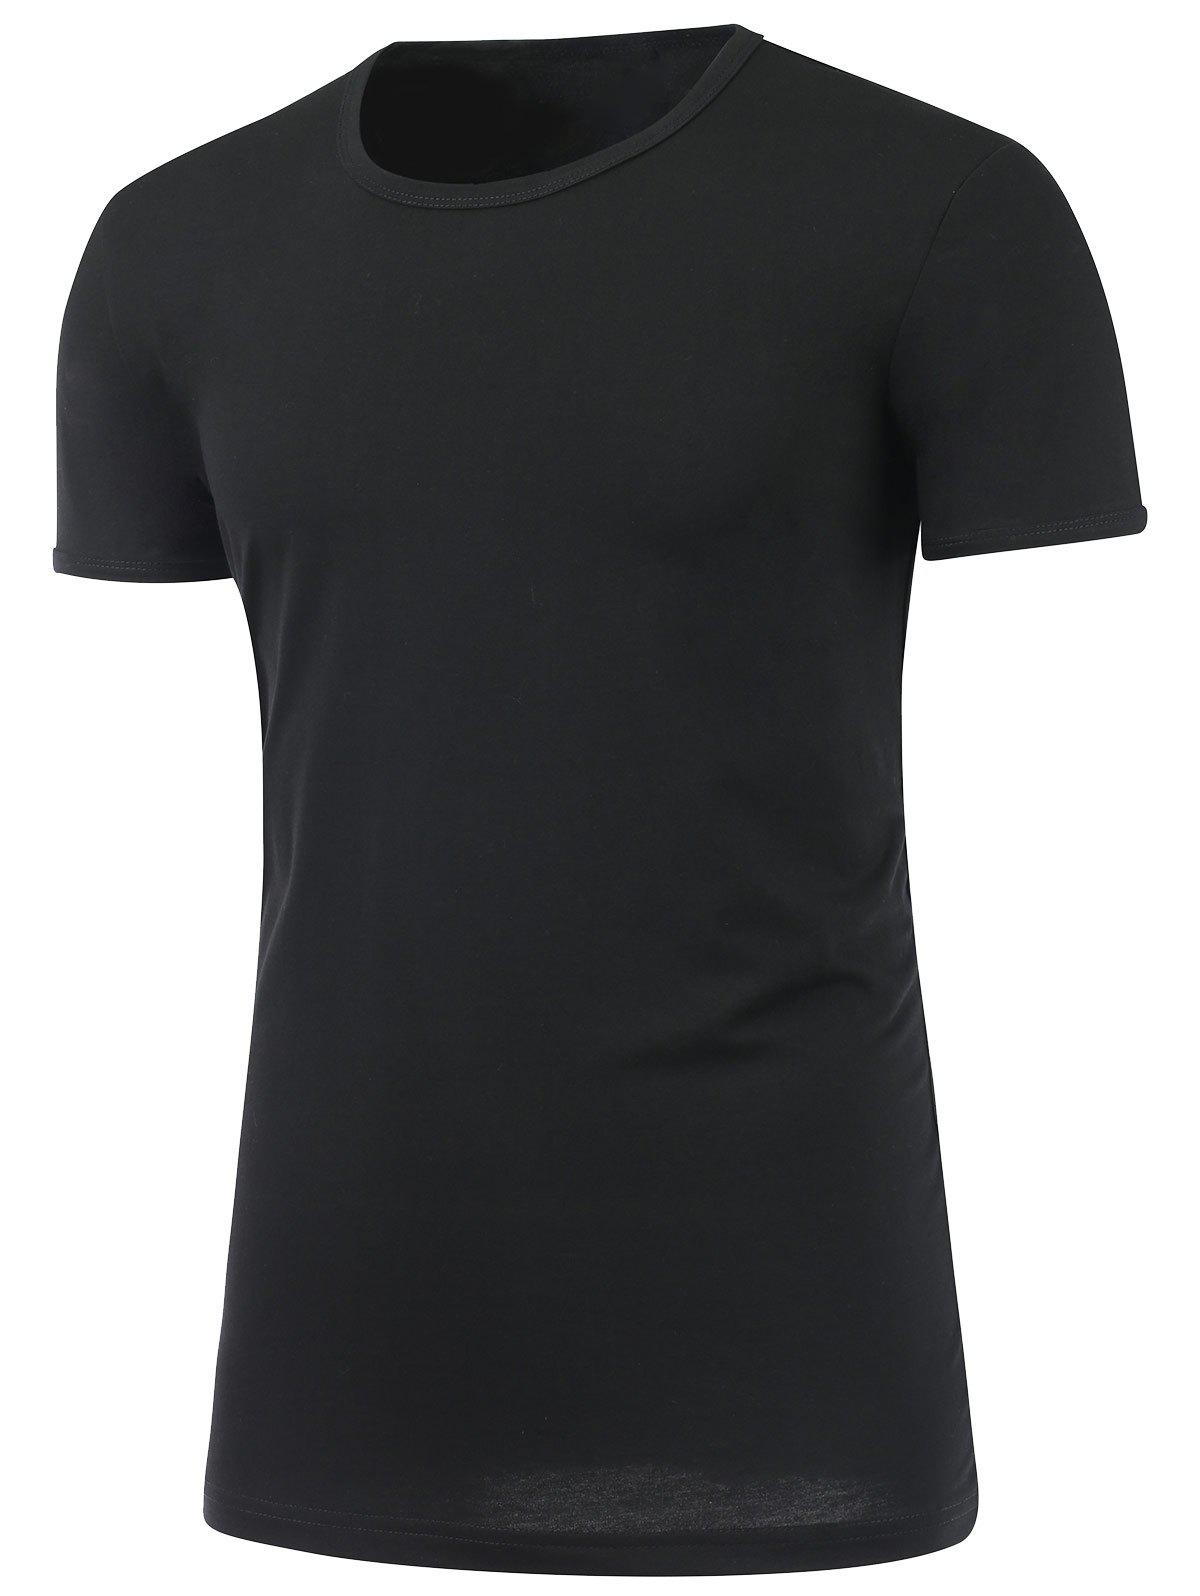 Slim Fit Short Sleeve Round Neck Tee - BLACK 5XL